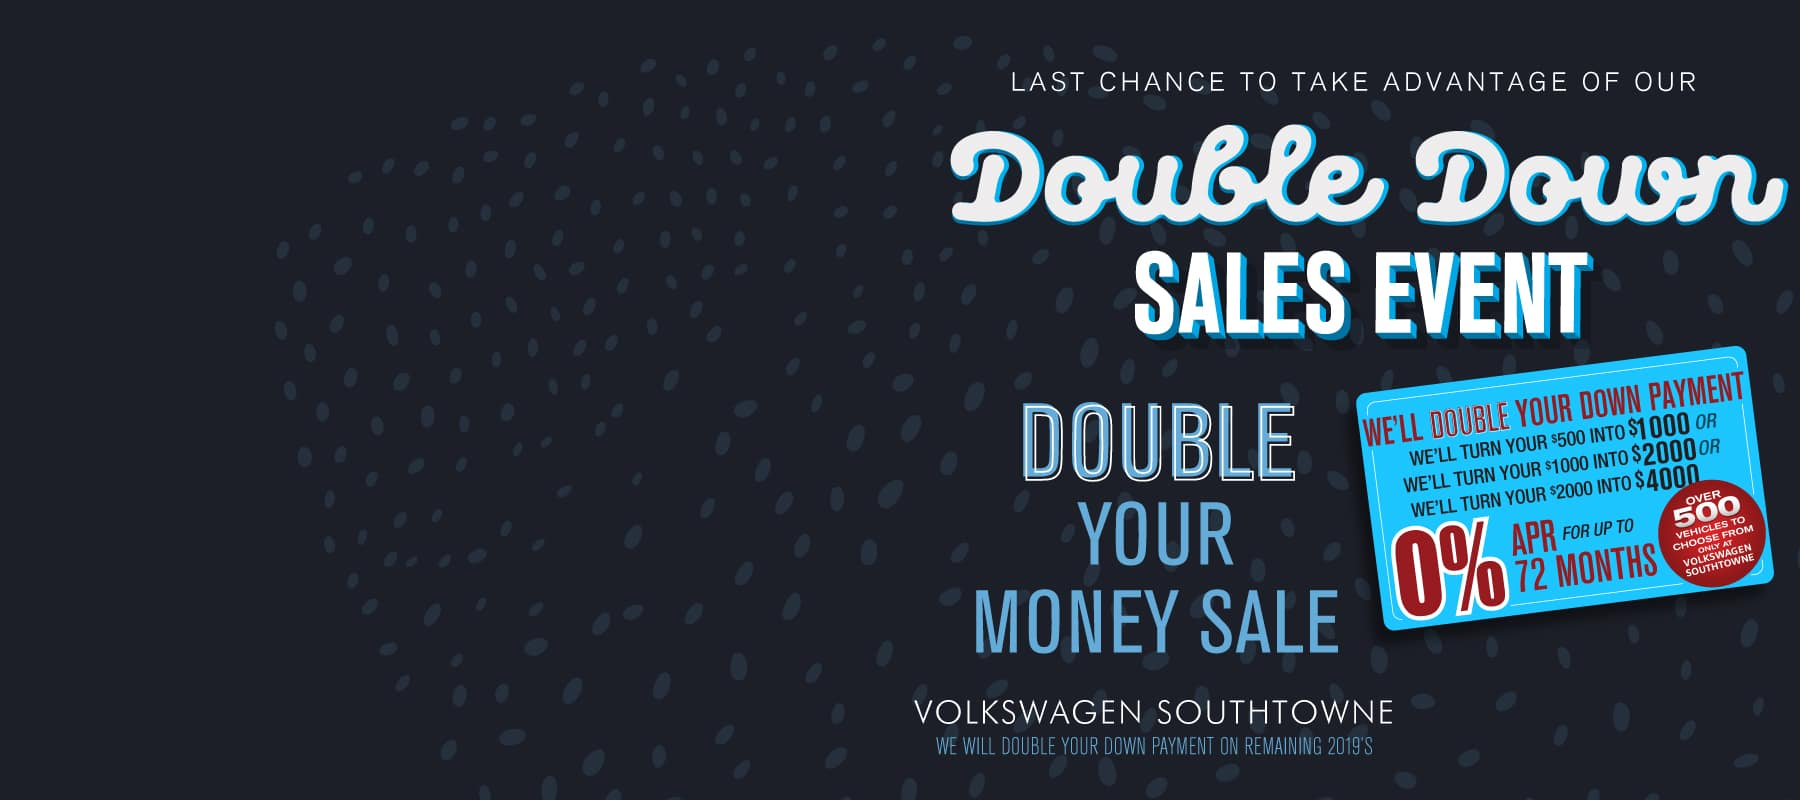 Volkswagen SouthTowne will DOUBLE your down payment!